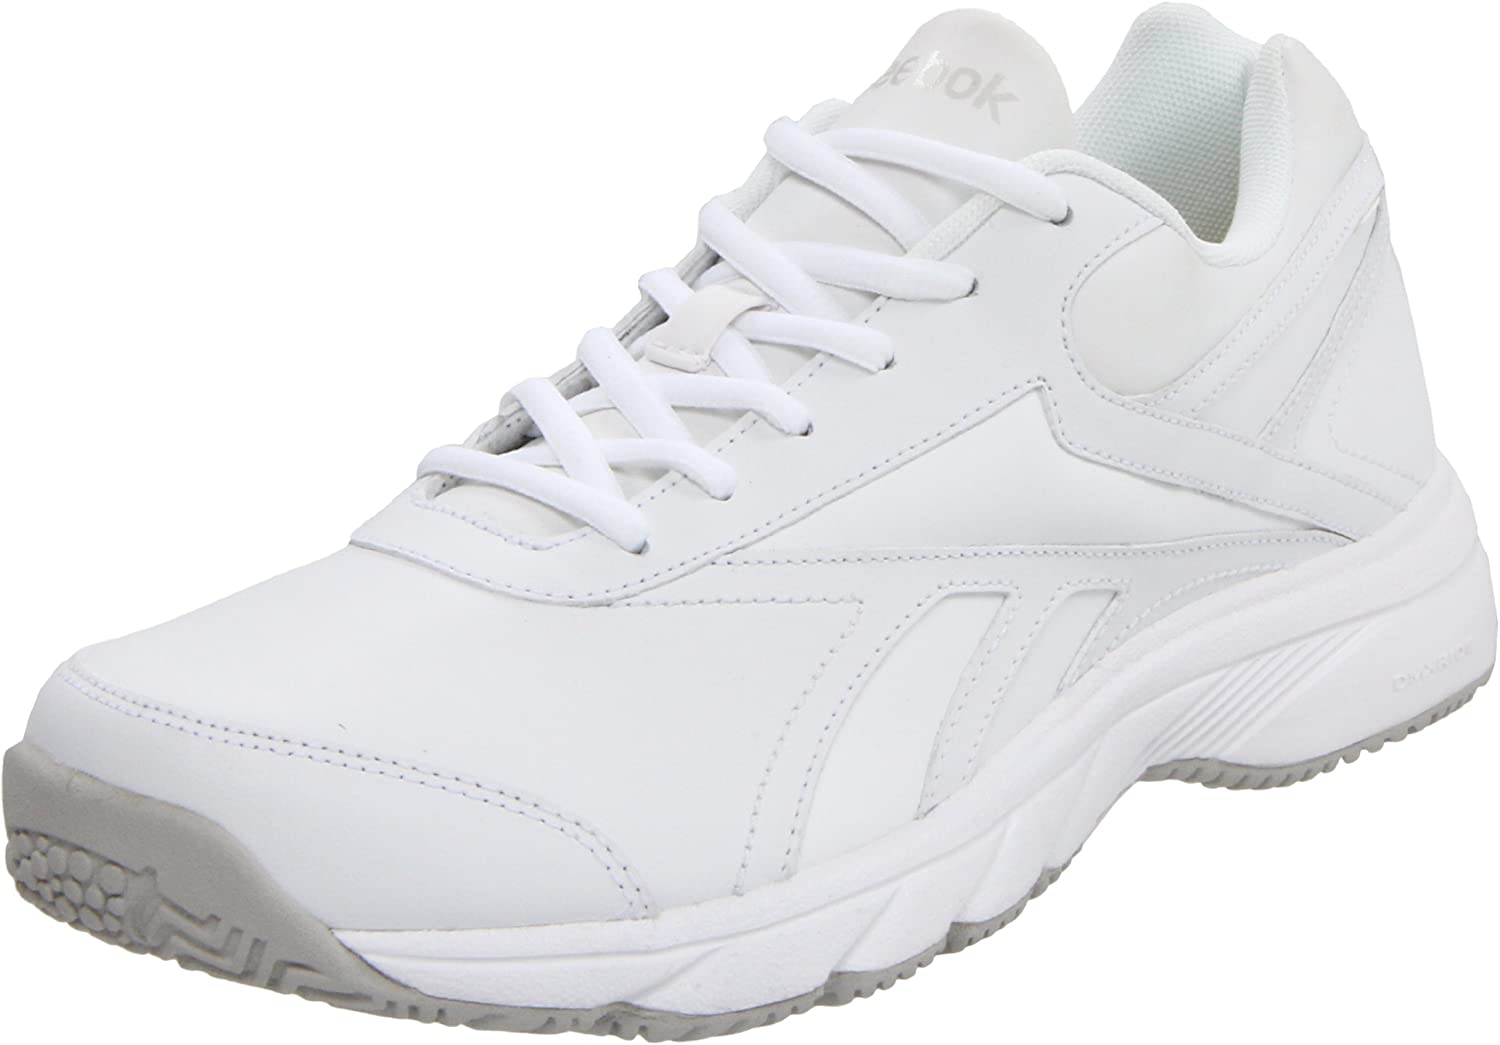 f810ea41954 Amazon.com  Reebok Men s Reeshift DMX Ride-M  Shoes